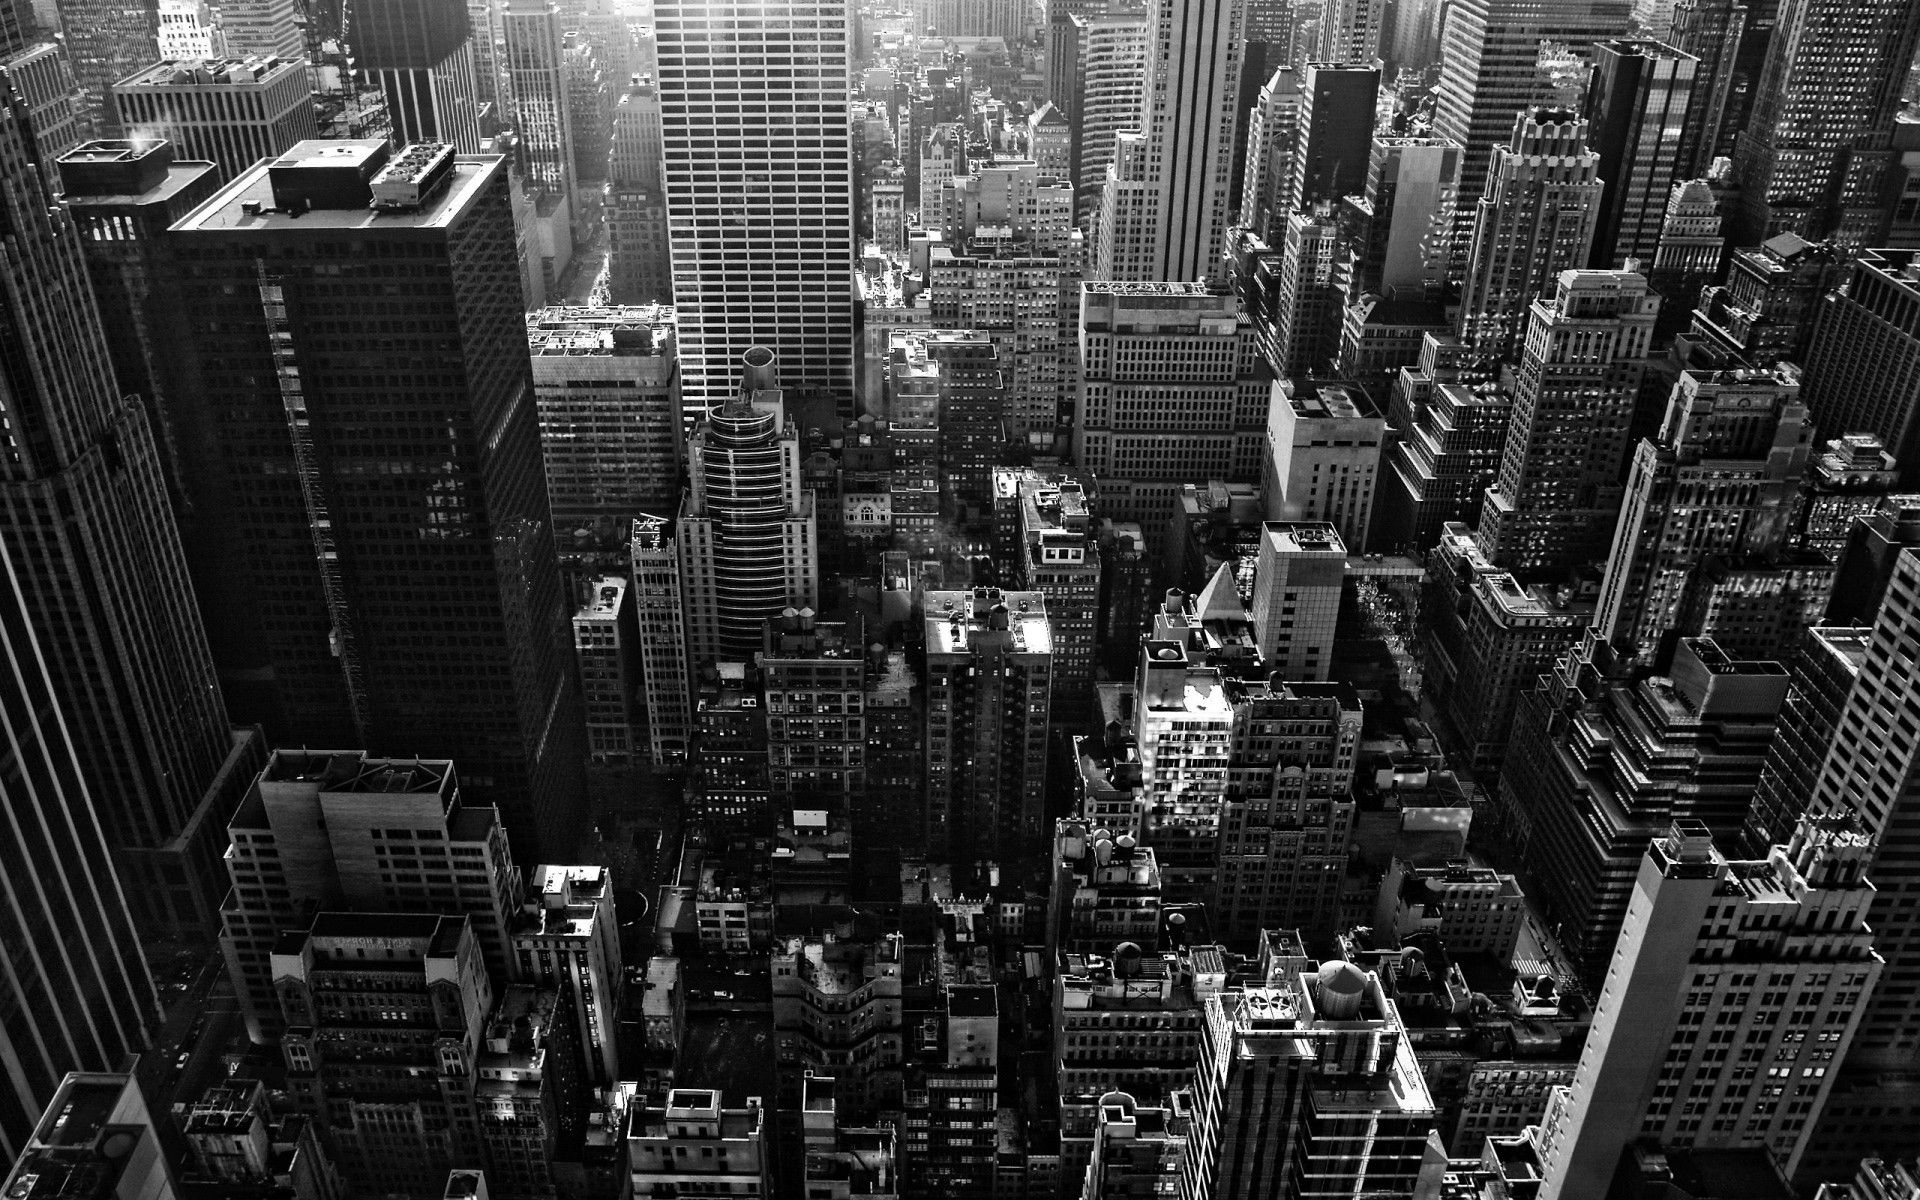 Black And White Hd Wallpapers Wallpapers Backgrounds Images Art Photos Black And White Wallpaper Phone Black And White City Cityscape Wallpaper